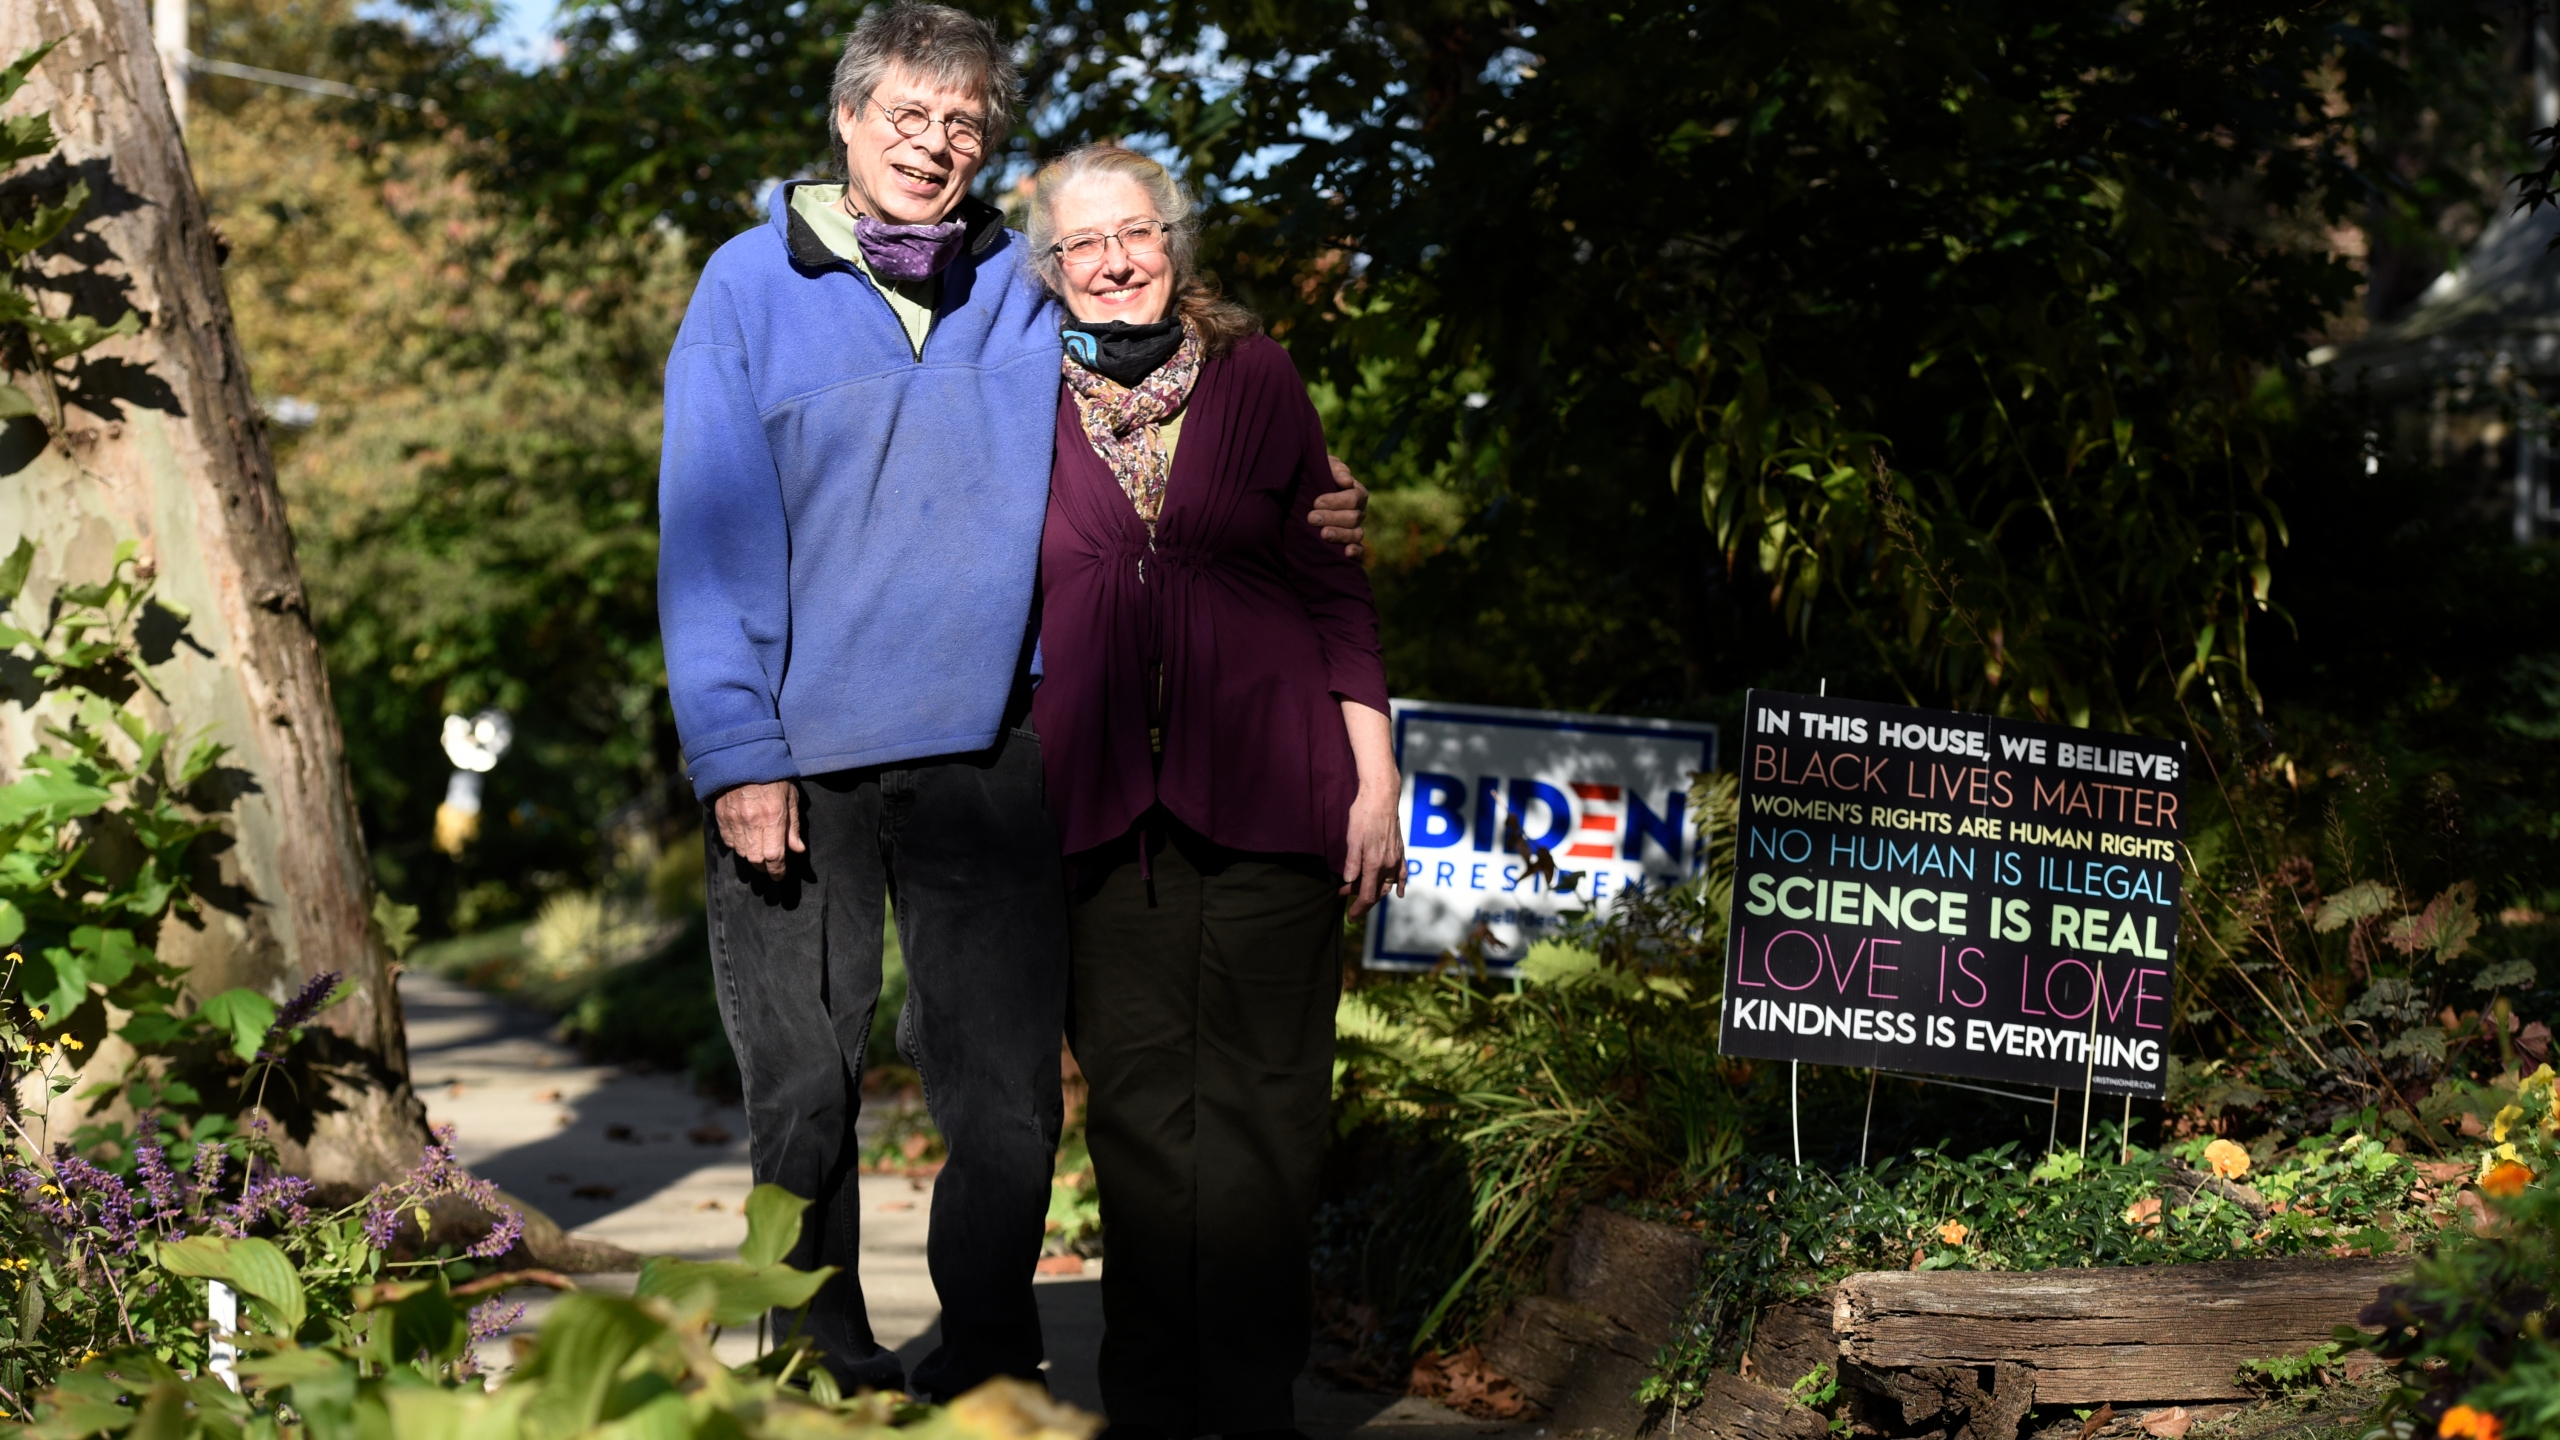 Ann Mintz, 73, and Clifford Wagner, 65, pose for a picture at their home in Philadelphia on Oct. 6, 2020. (Michael Perez / Associated Press)